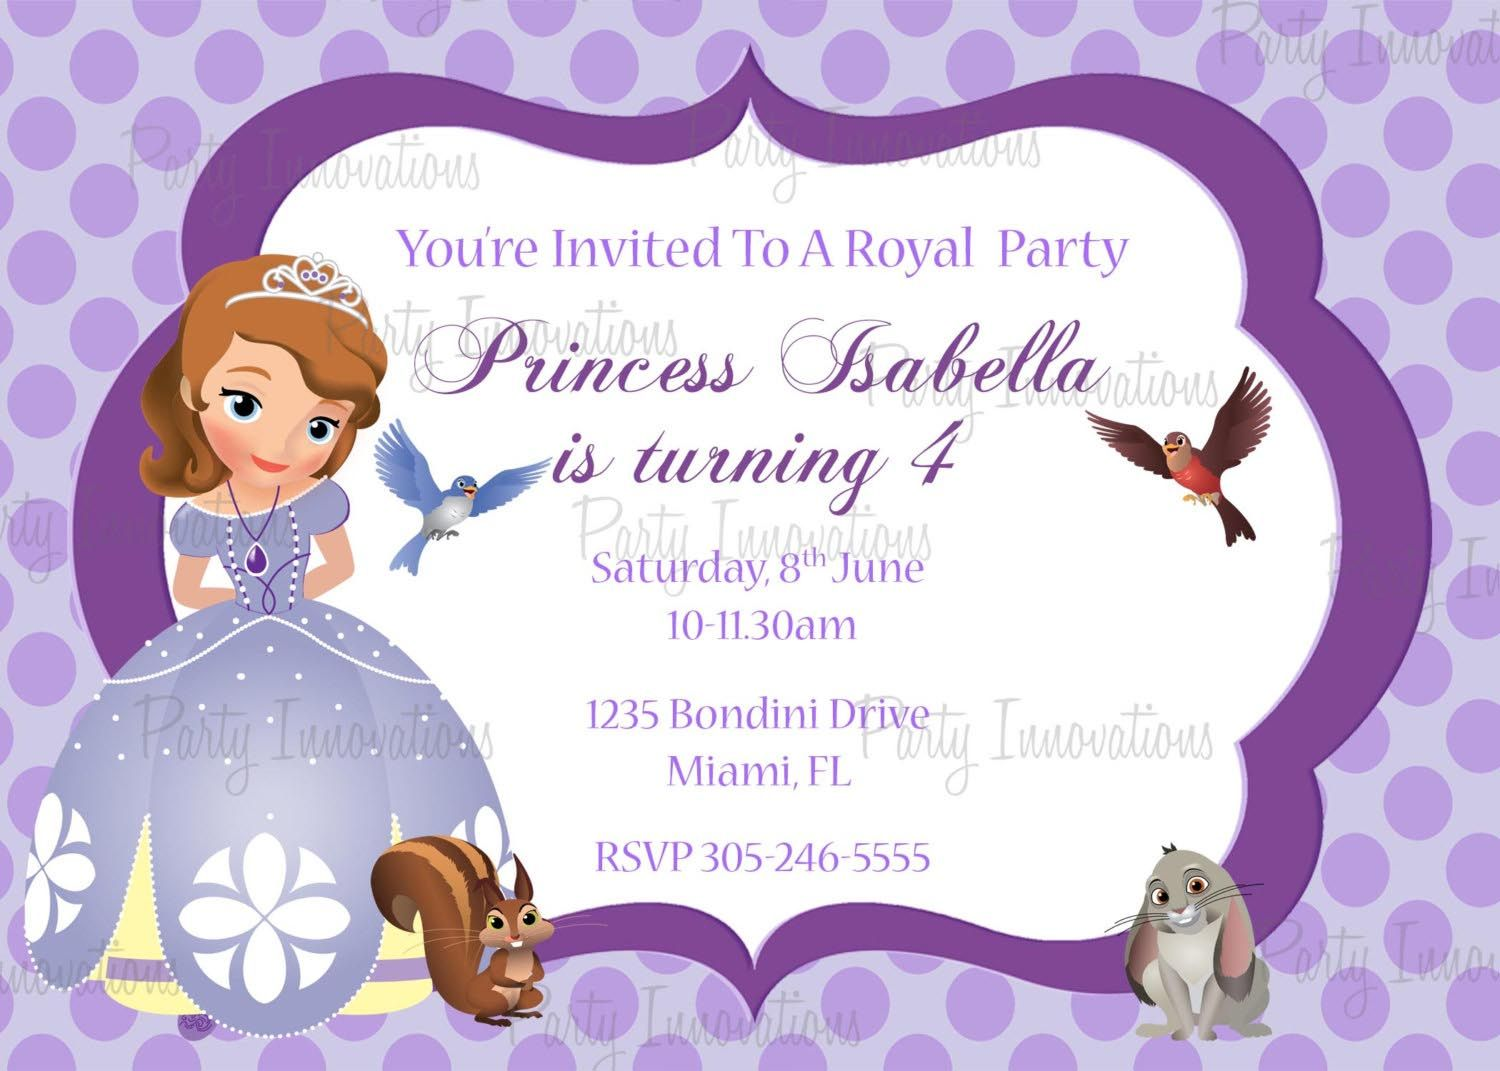 Princess Sofia Party Invitations | Princess Party | Pinterest ...